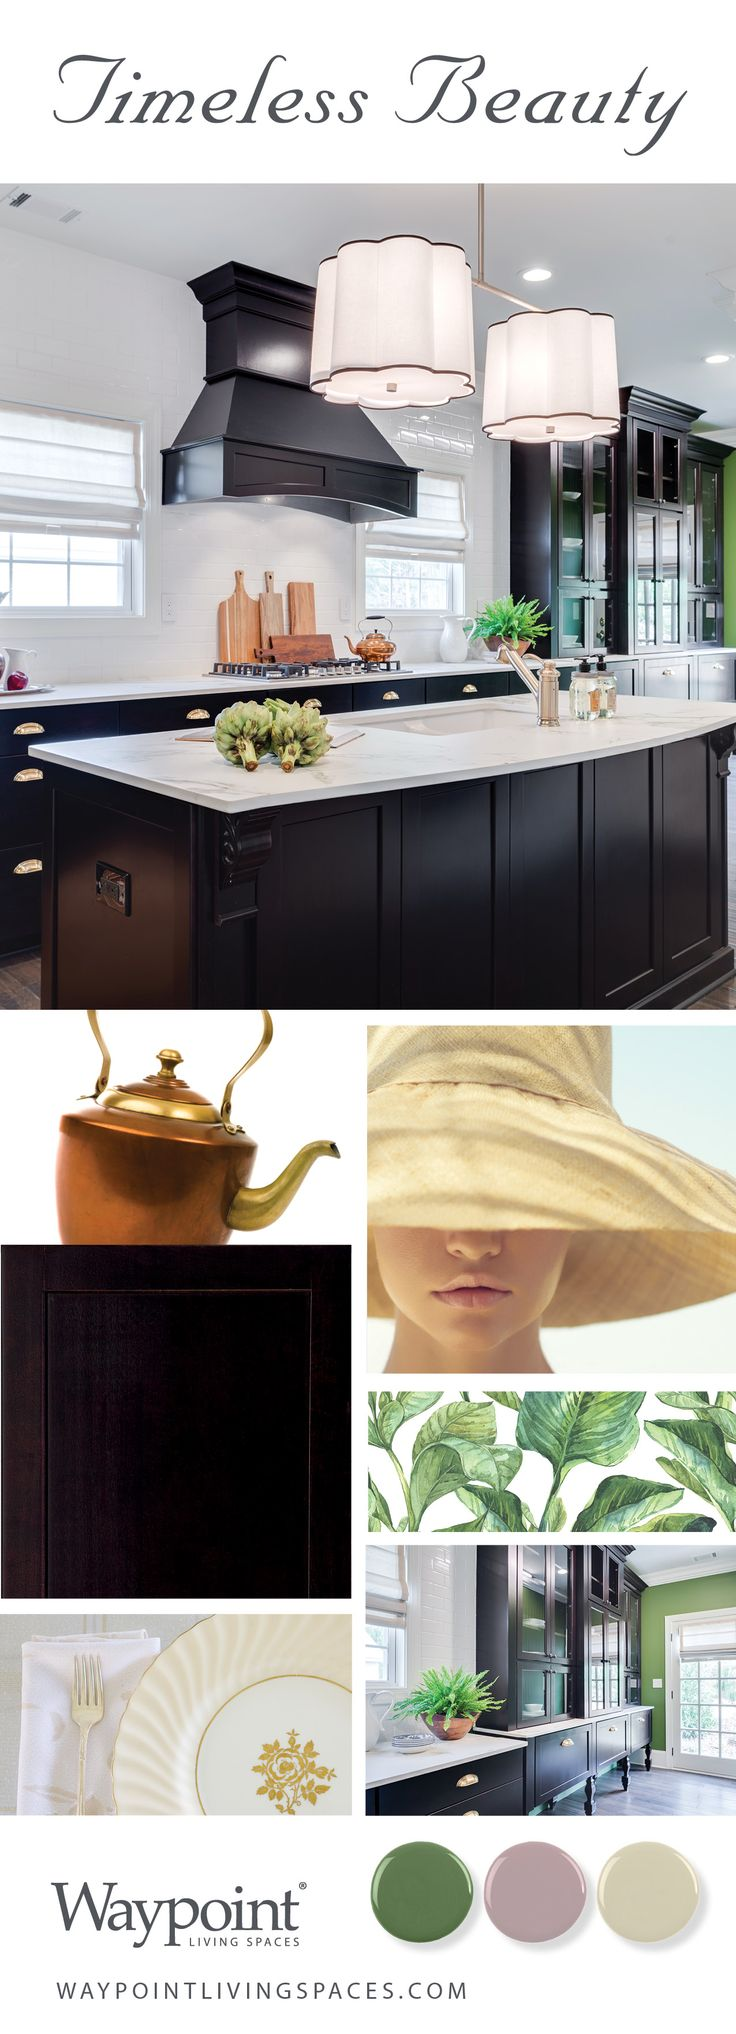 14 best painted cashmere cabinets images on pinterest cashmere kitchen cabinets shown in 410 maple espresso and 760 painted linen waypoint living spaces